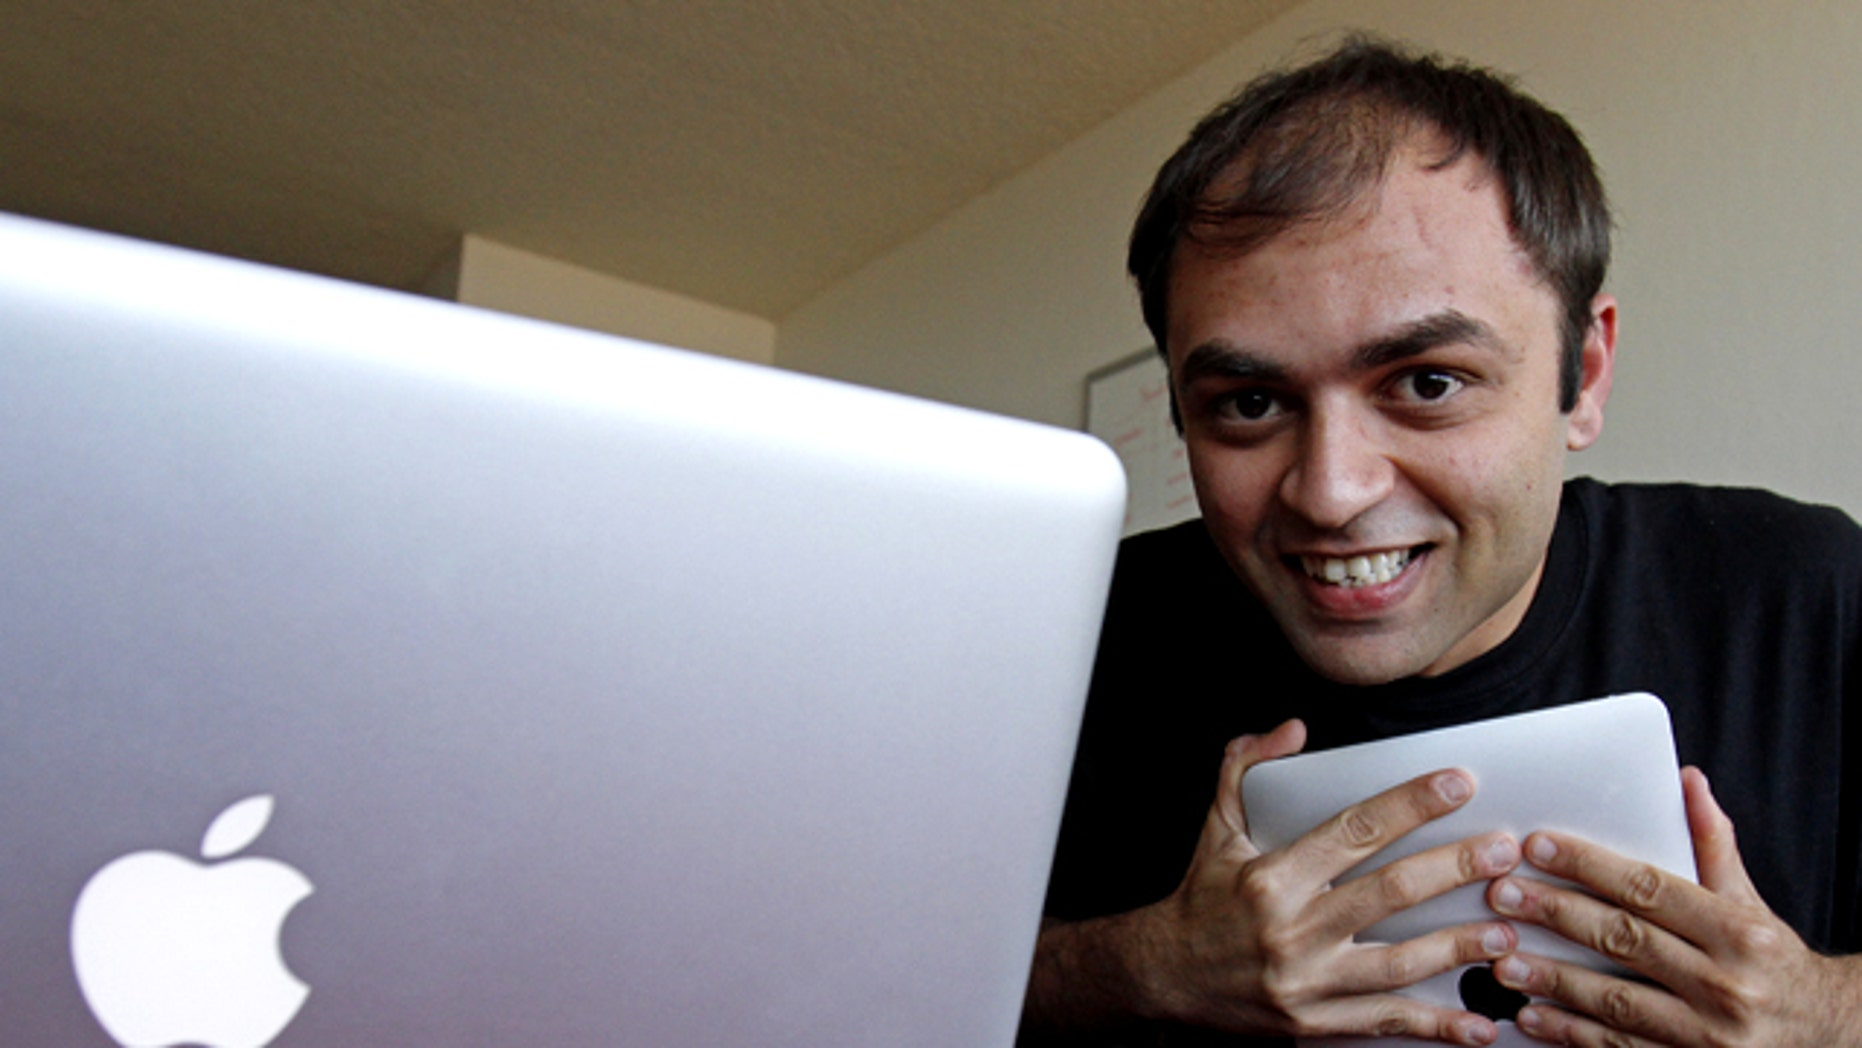 """Cupidtino founder Mel Sampat hugs his Apple iPad in San Francisco. The site aims to connect Apple aficionados with like-minded """"Machearts."""" The idea is that if you love the iPhone you might be best suited to date a fellow Apple fan."""